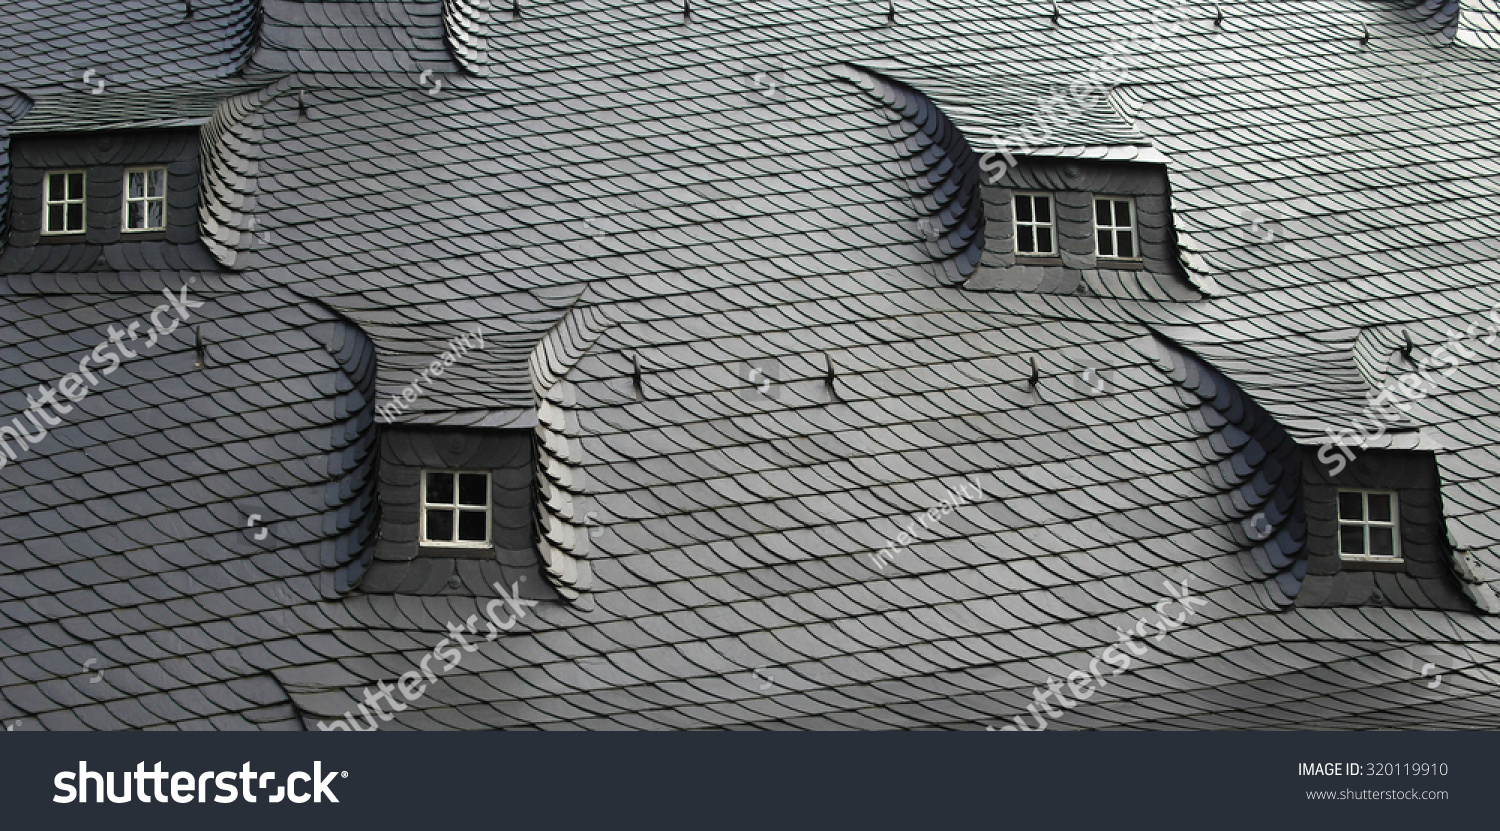 Traditional slate shale tiles roof attic stock photo 320119910 shutterstock - Traditional houses attic ...